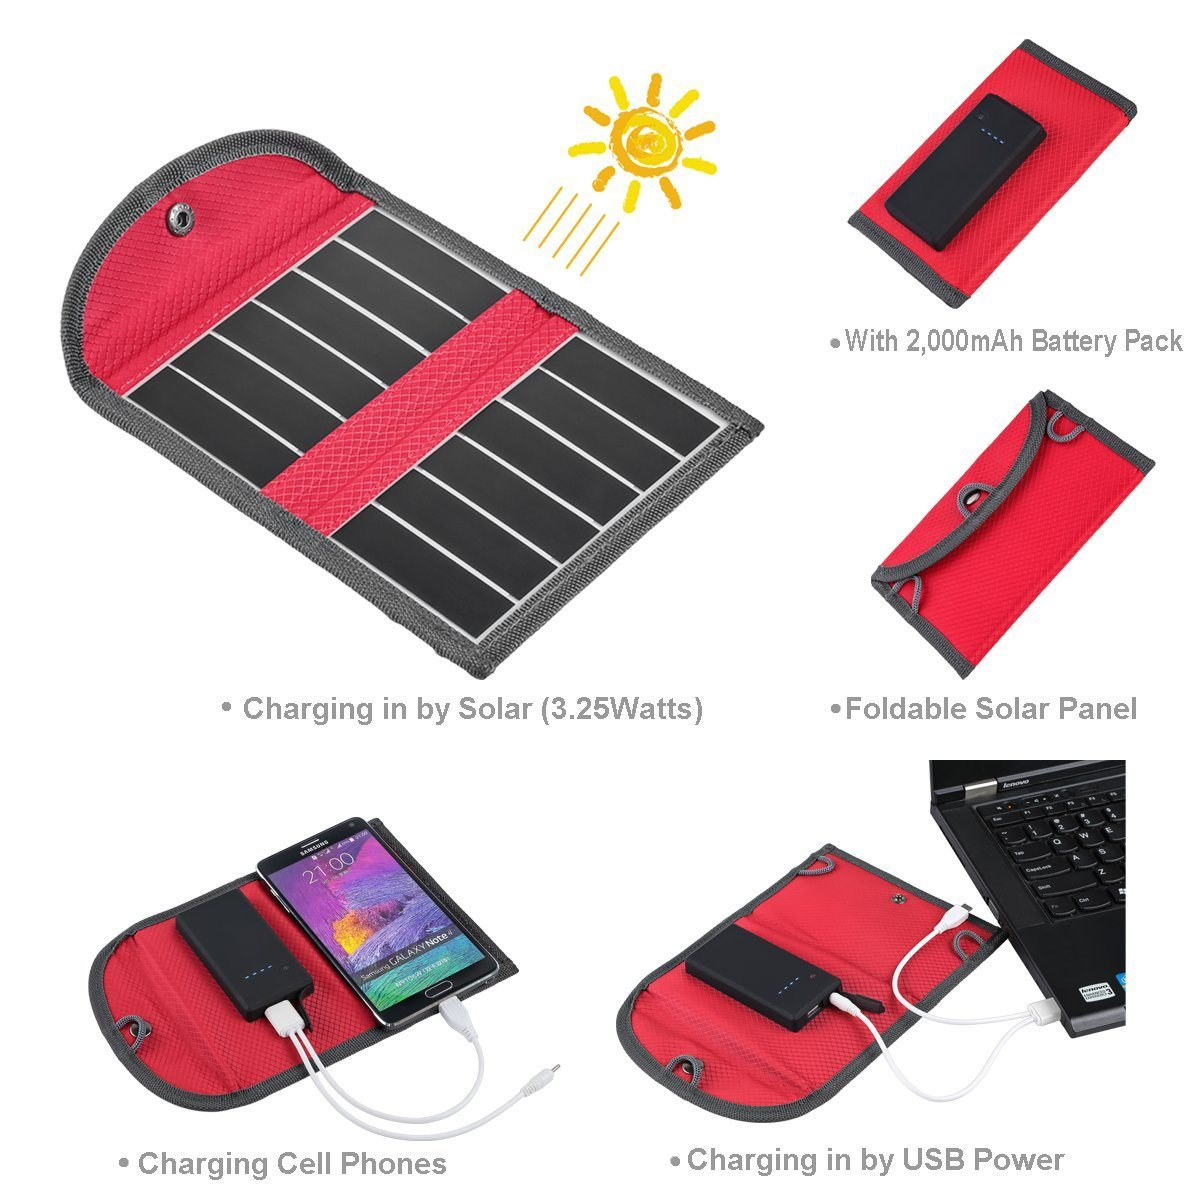 Outdoor Solar Hiking Bag Lightweight Solar Bag, Solar Folding Backpack